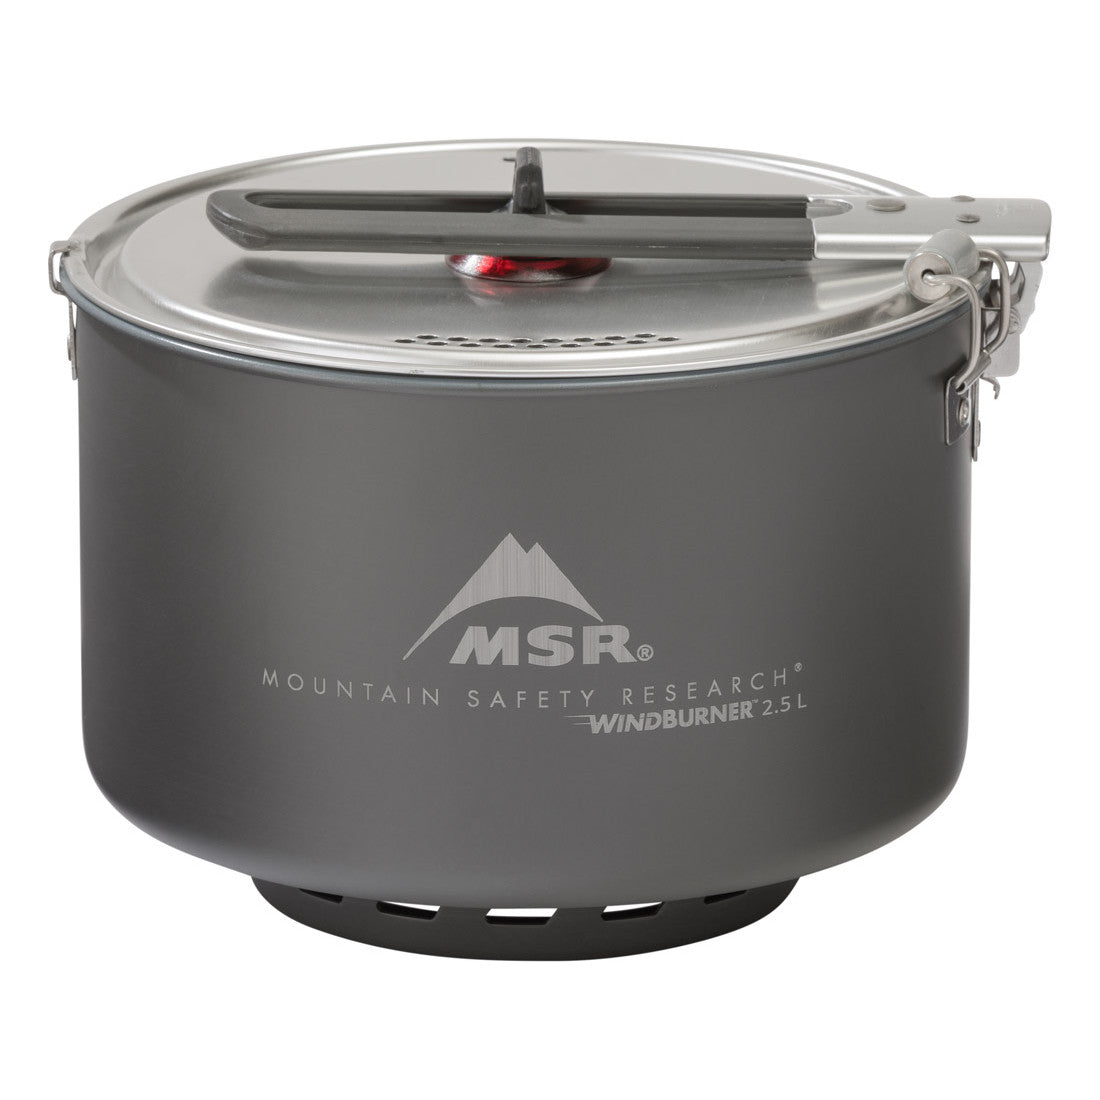 MSR Windburner Group Stove System, showing pot